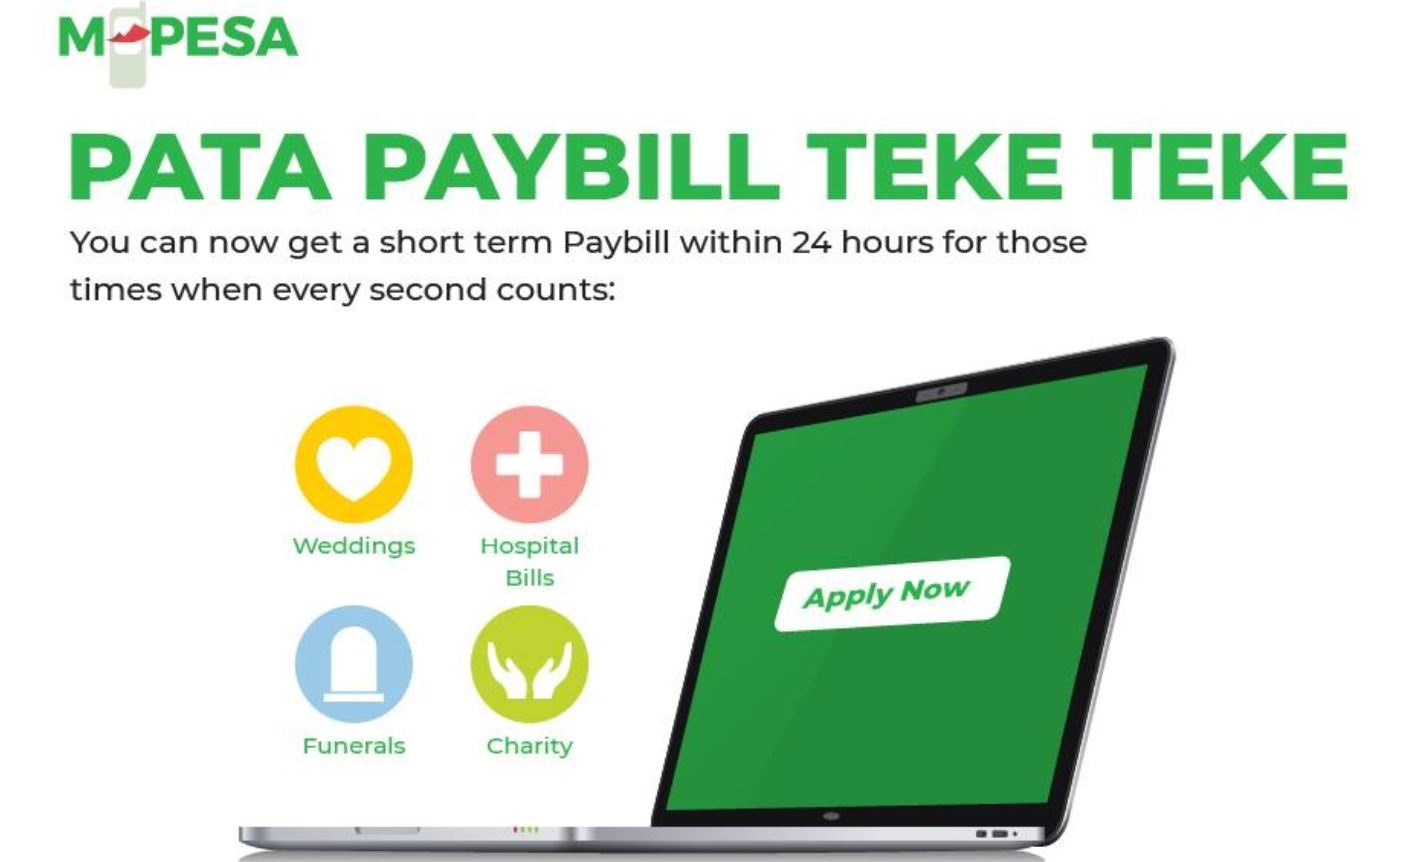 Guide on How to apply for Mpesa Short Term Paybill Number Online for fundraising